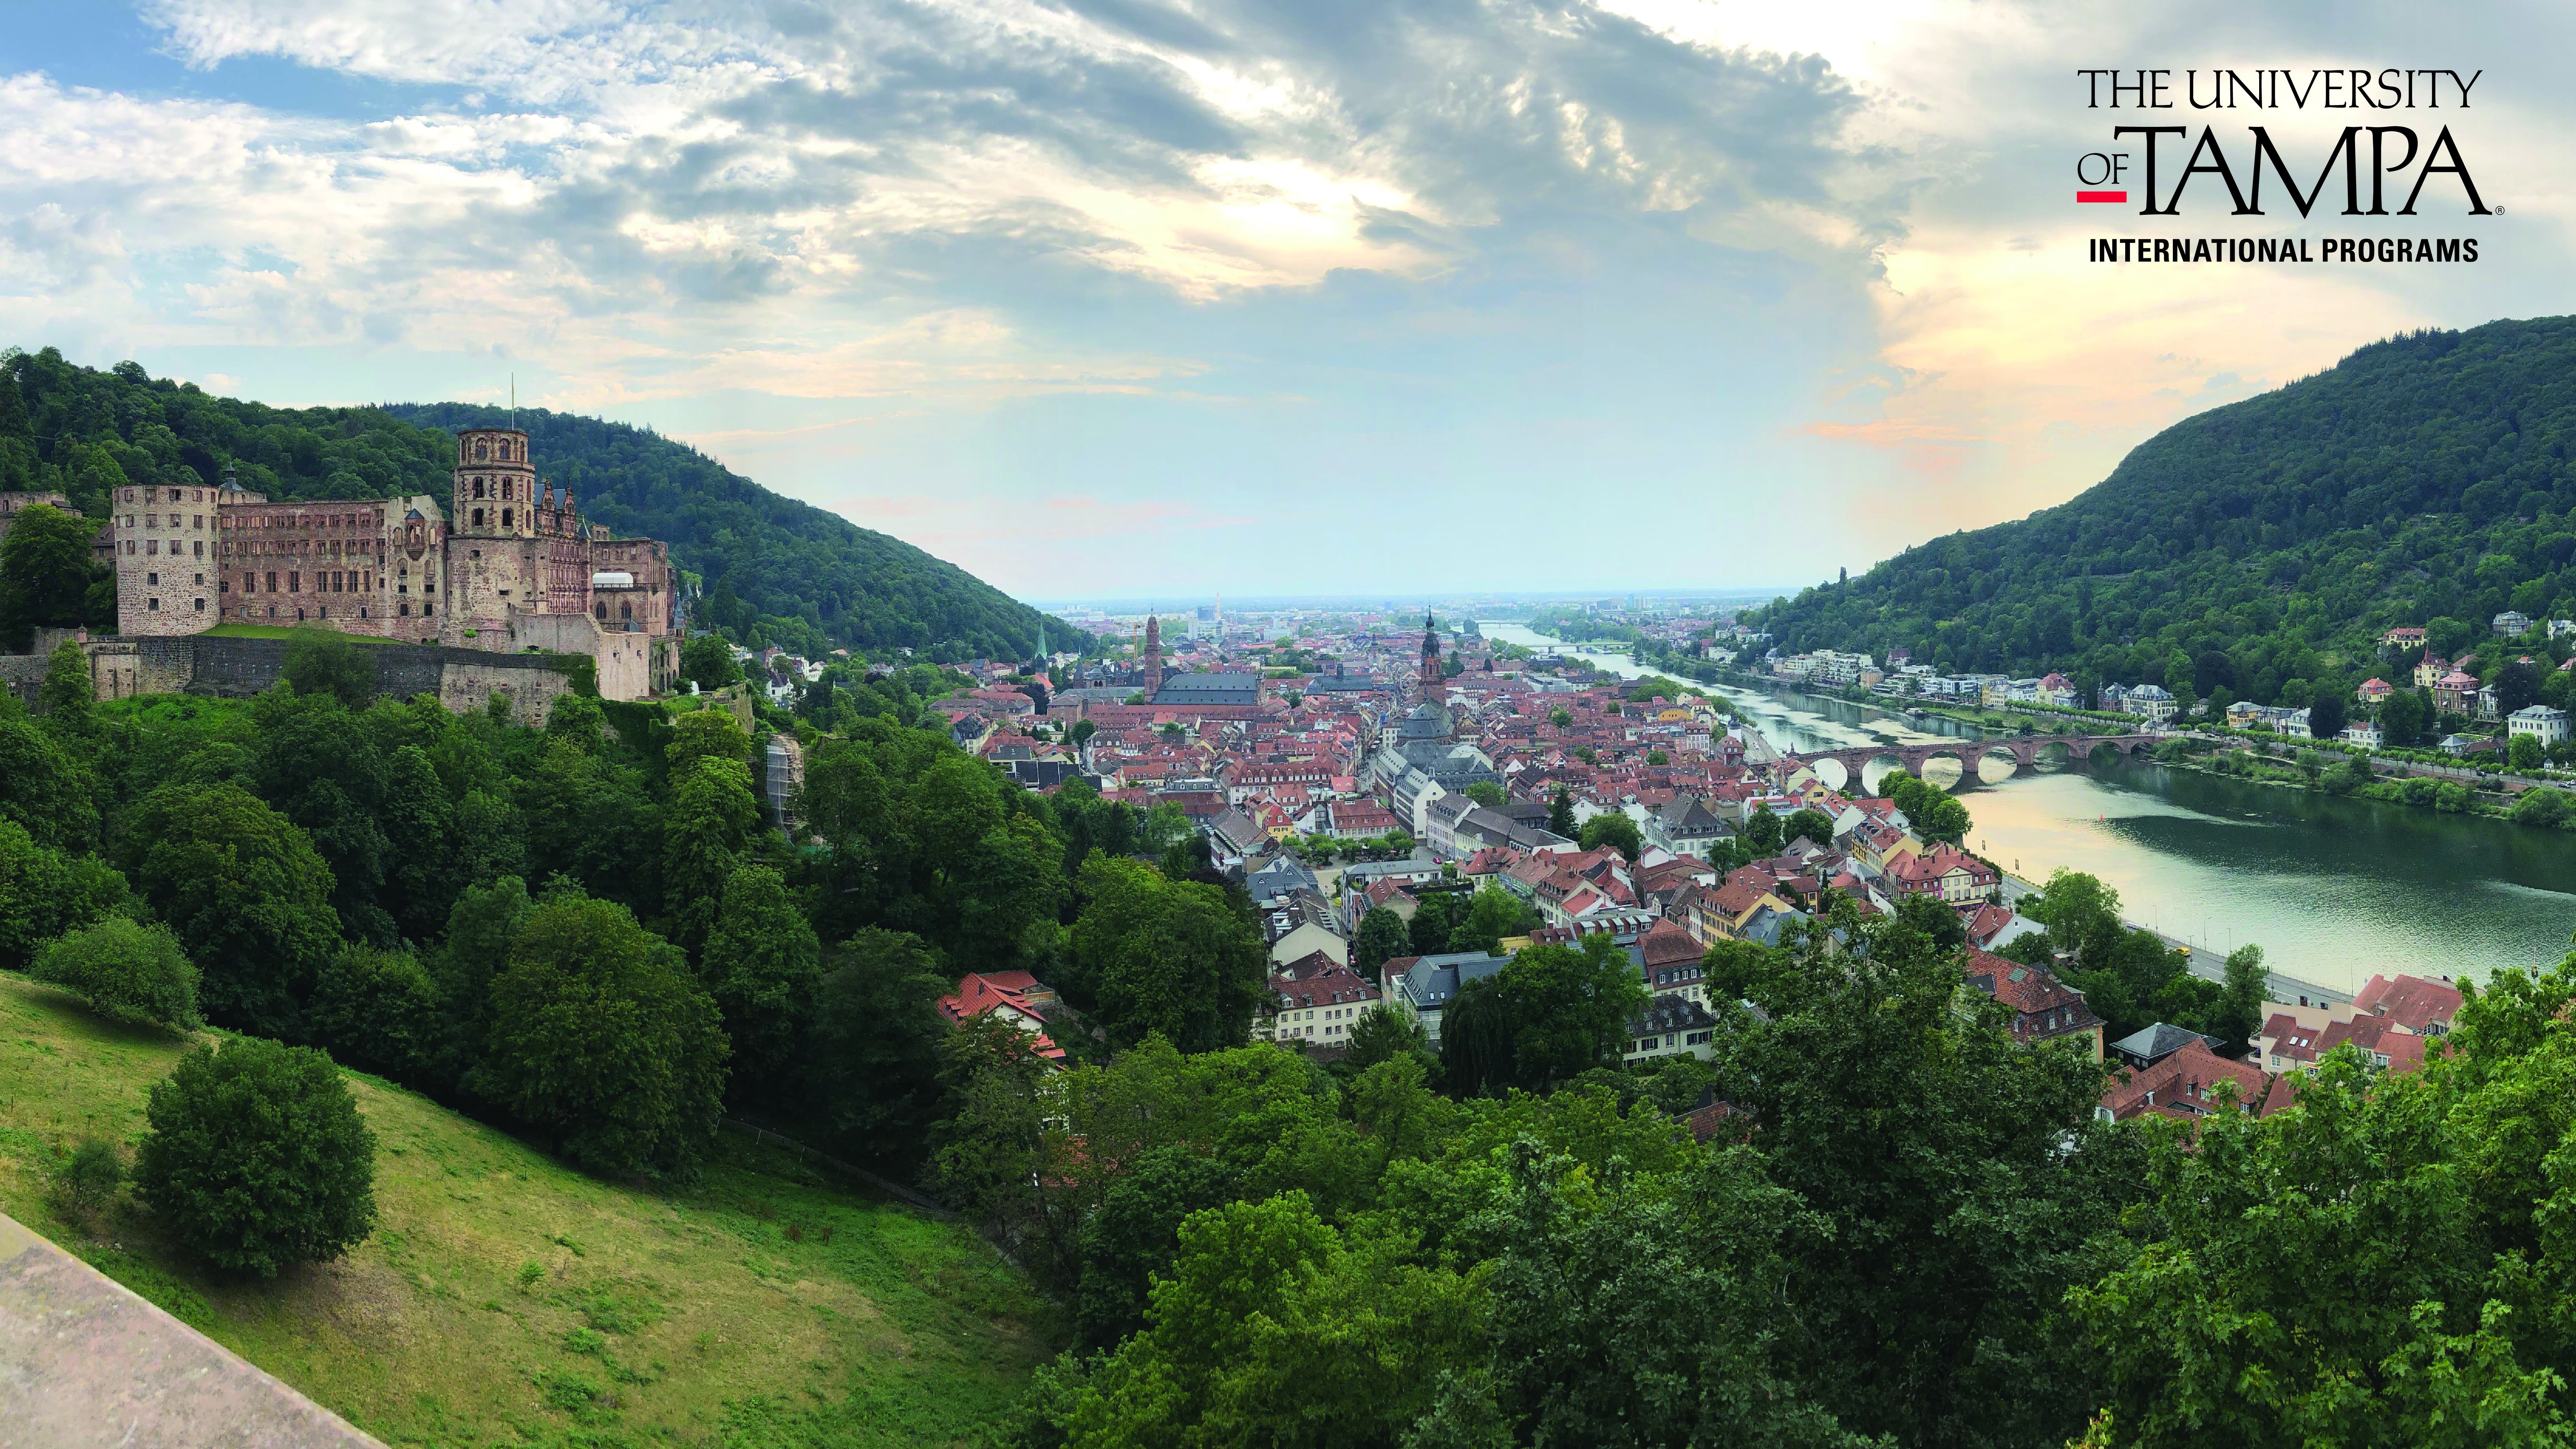 Photographer: Mark Colvenbach, Director, Career Services Heidelberg, Germany Located just beyond castle overlooking the town of Heidelberg